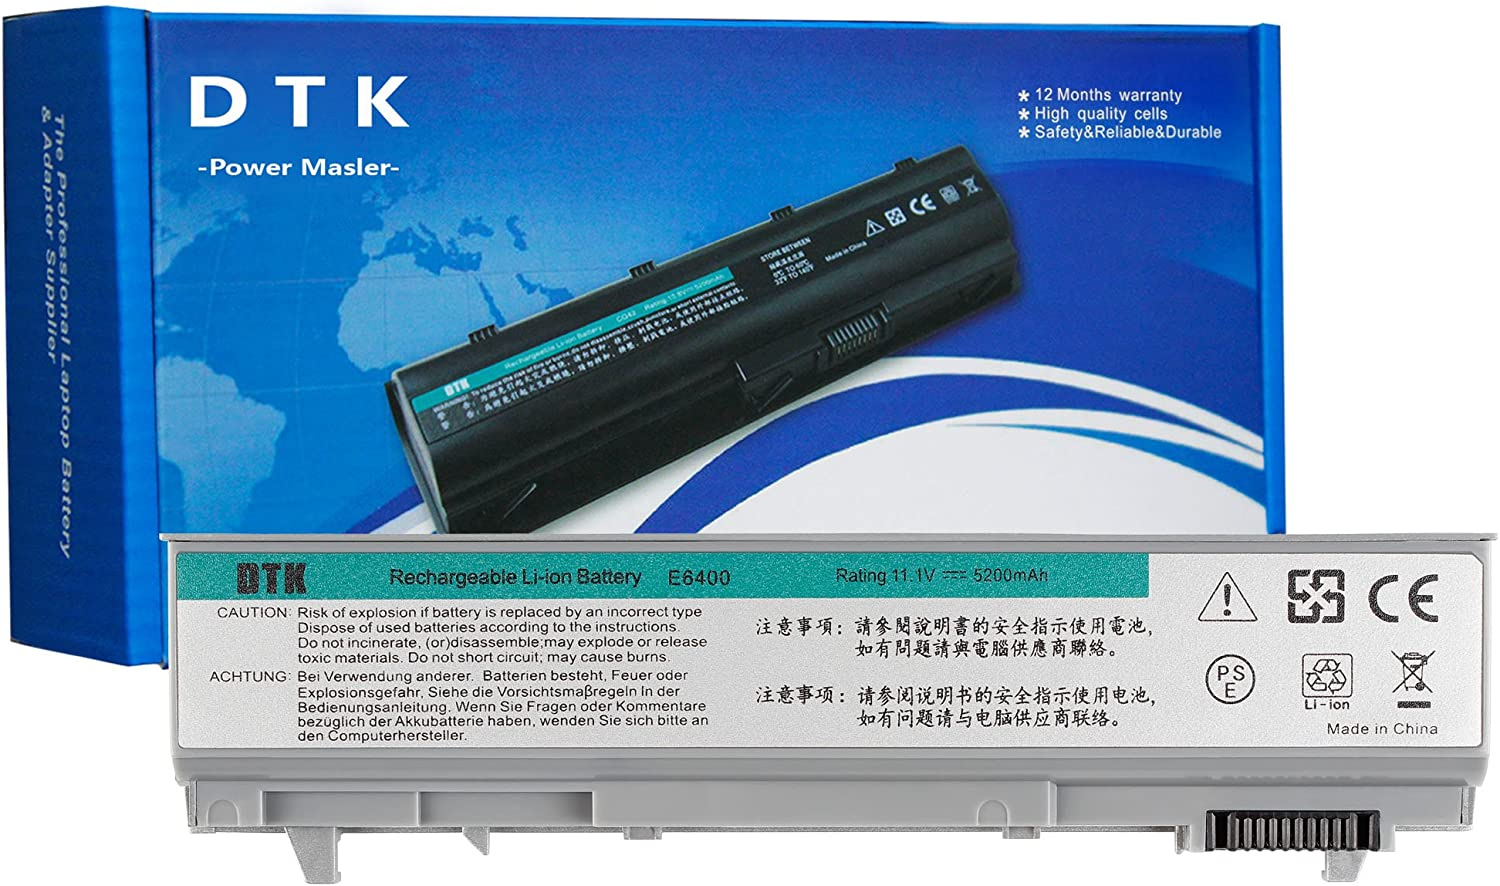 DTK 0RG049 PT434 KY265 W1193 Laptop Battery Replacement for Dell Latitude E6400 E6410 E6500 E6510 Precision M2400 M4400 M4500 Notebook 11.1V 5200mAh 6-Cell